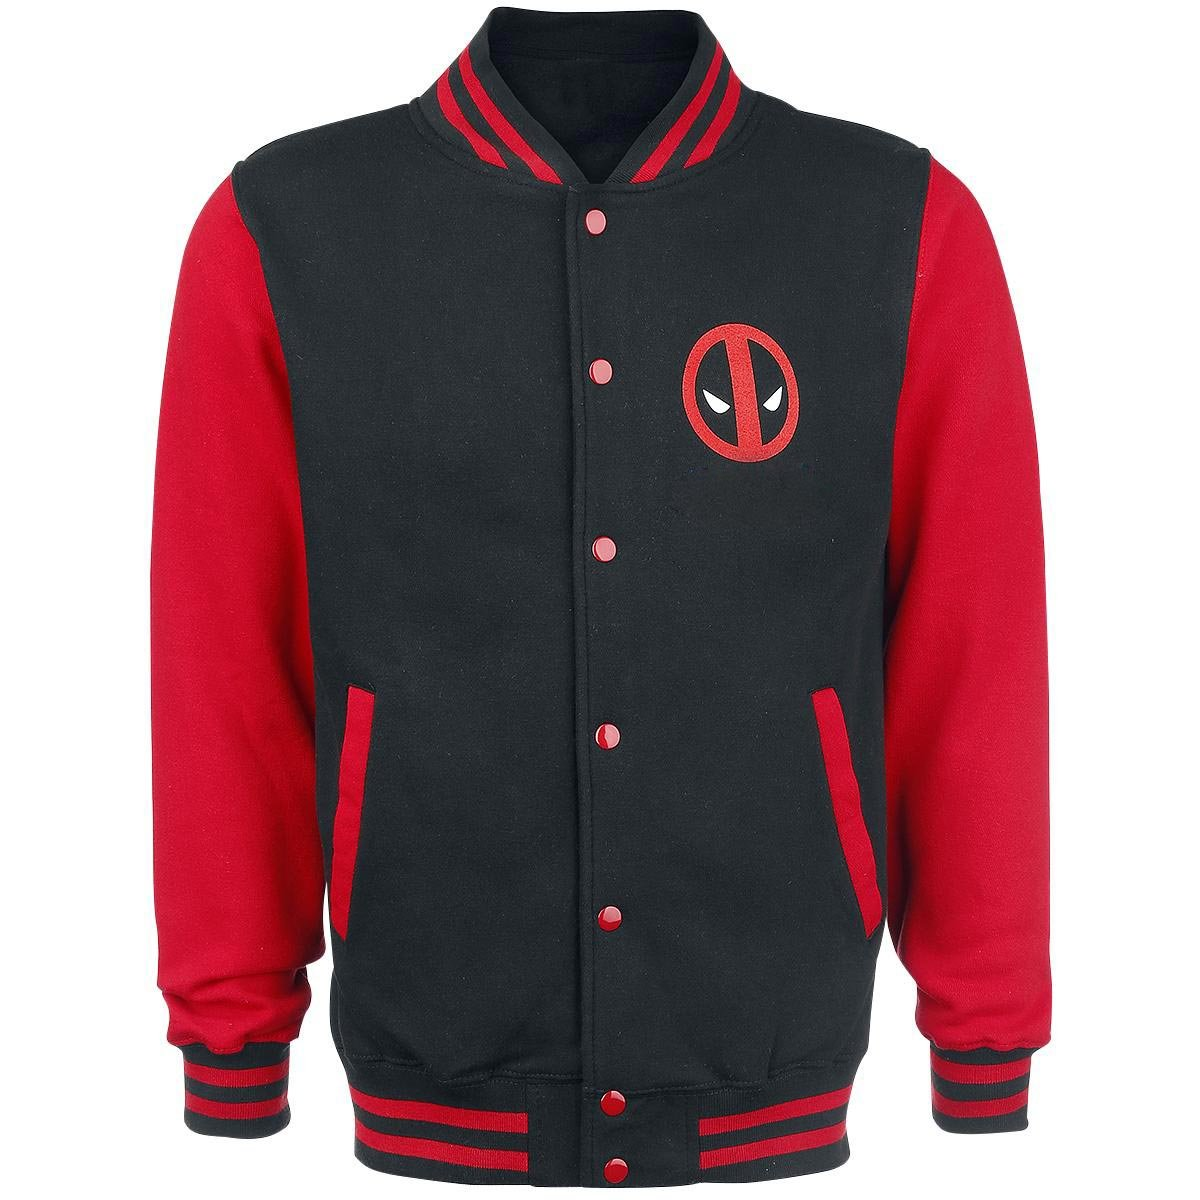 Deadpool Varsity Jacket Superhero Merchandise for Him | M